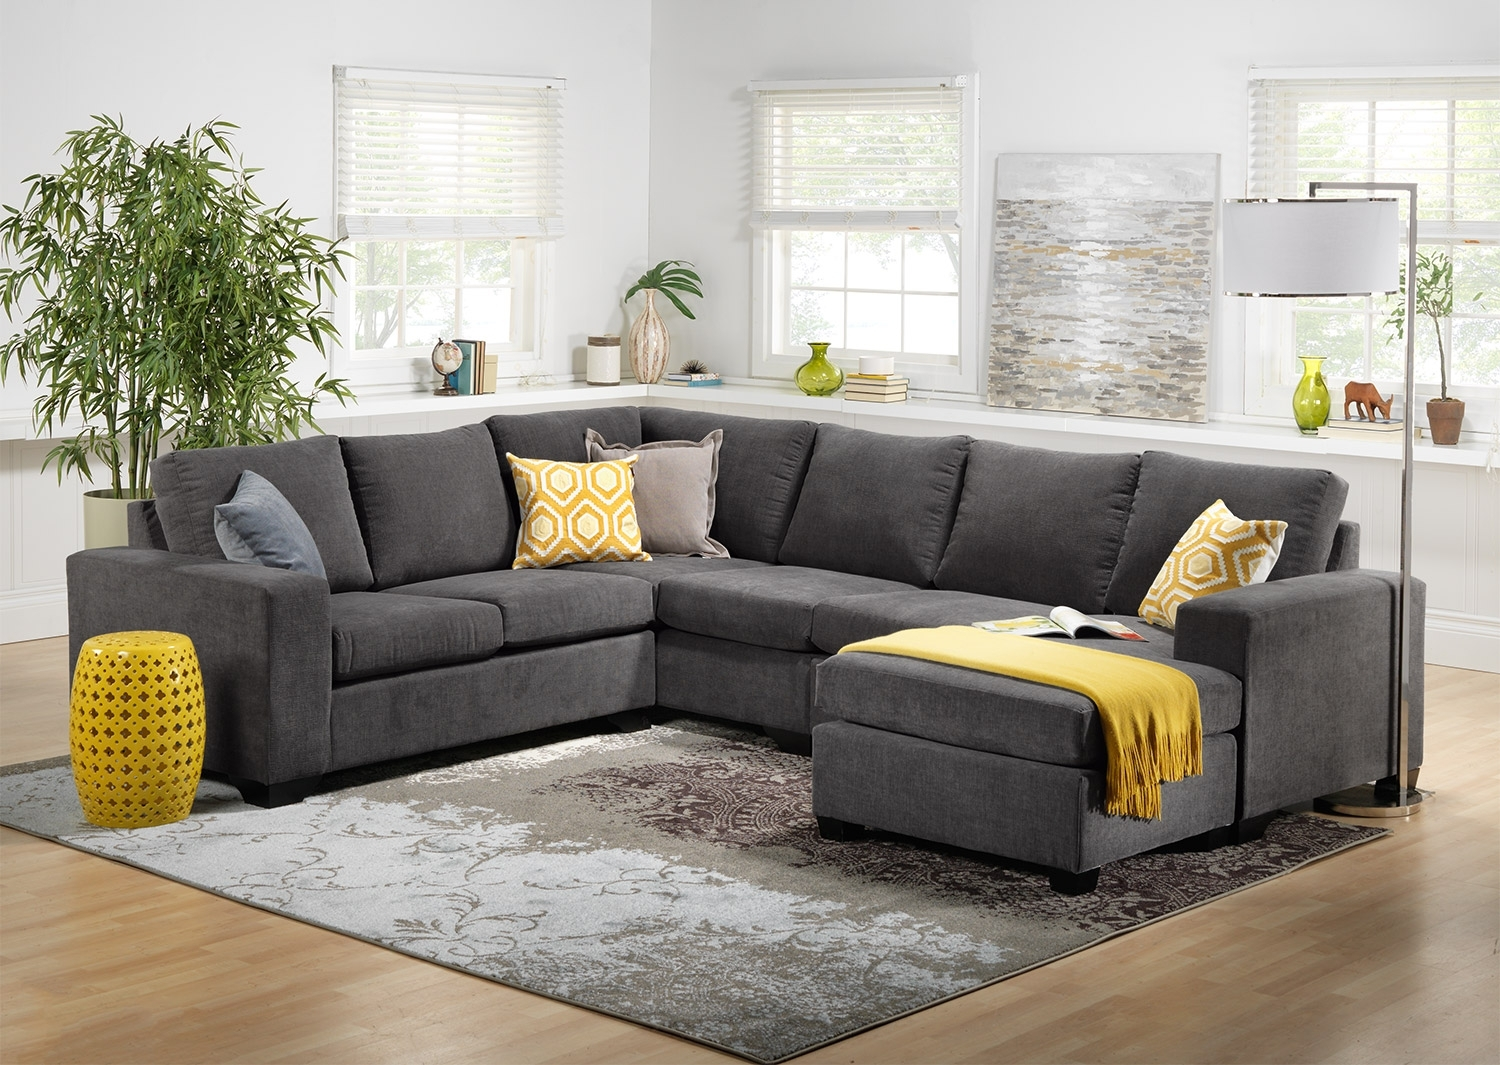 sectional sofas canada willow and hall sofa bed instructions 10 top in ideas